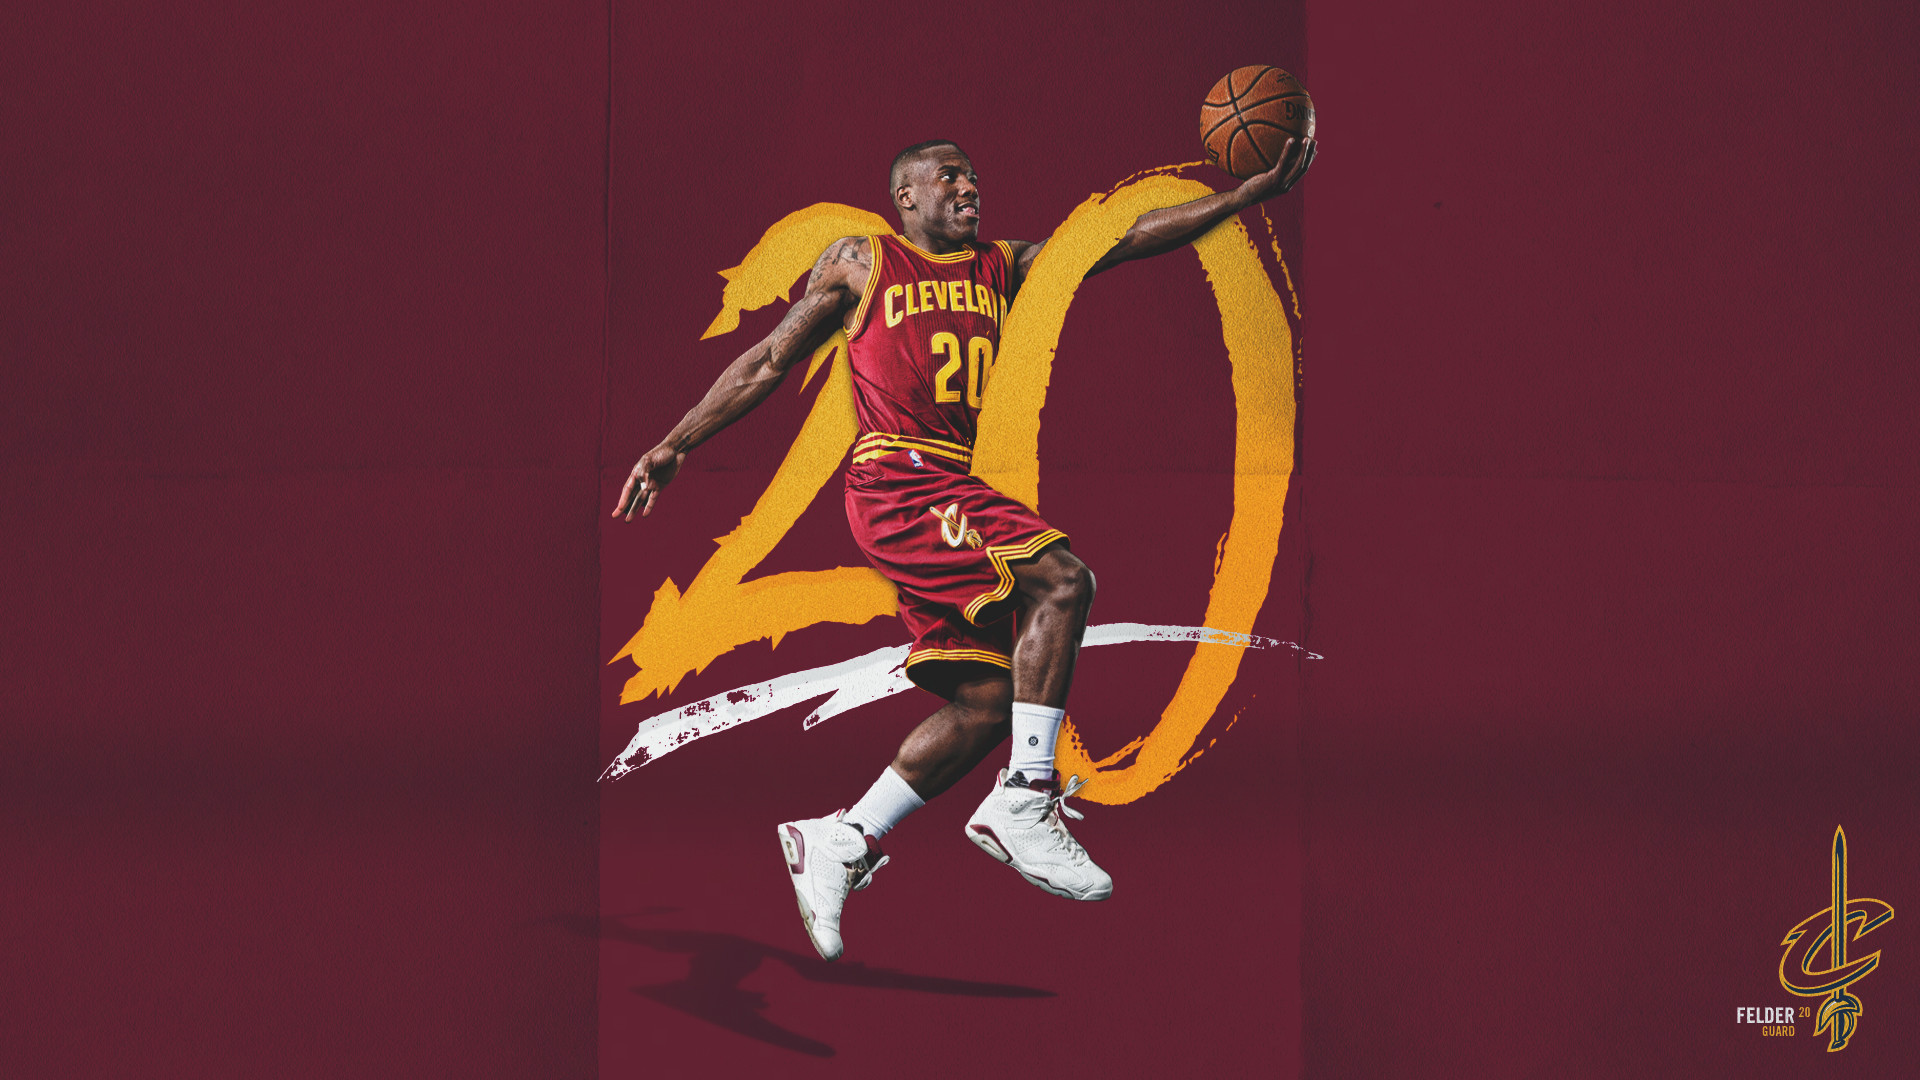 cleveland cavaliers basketball wallpapers (75+ images)